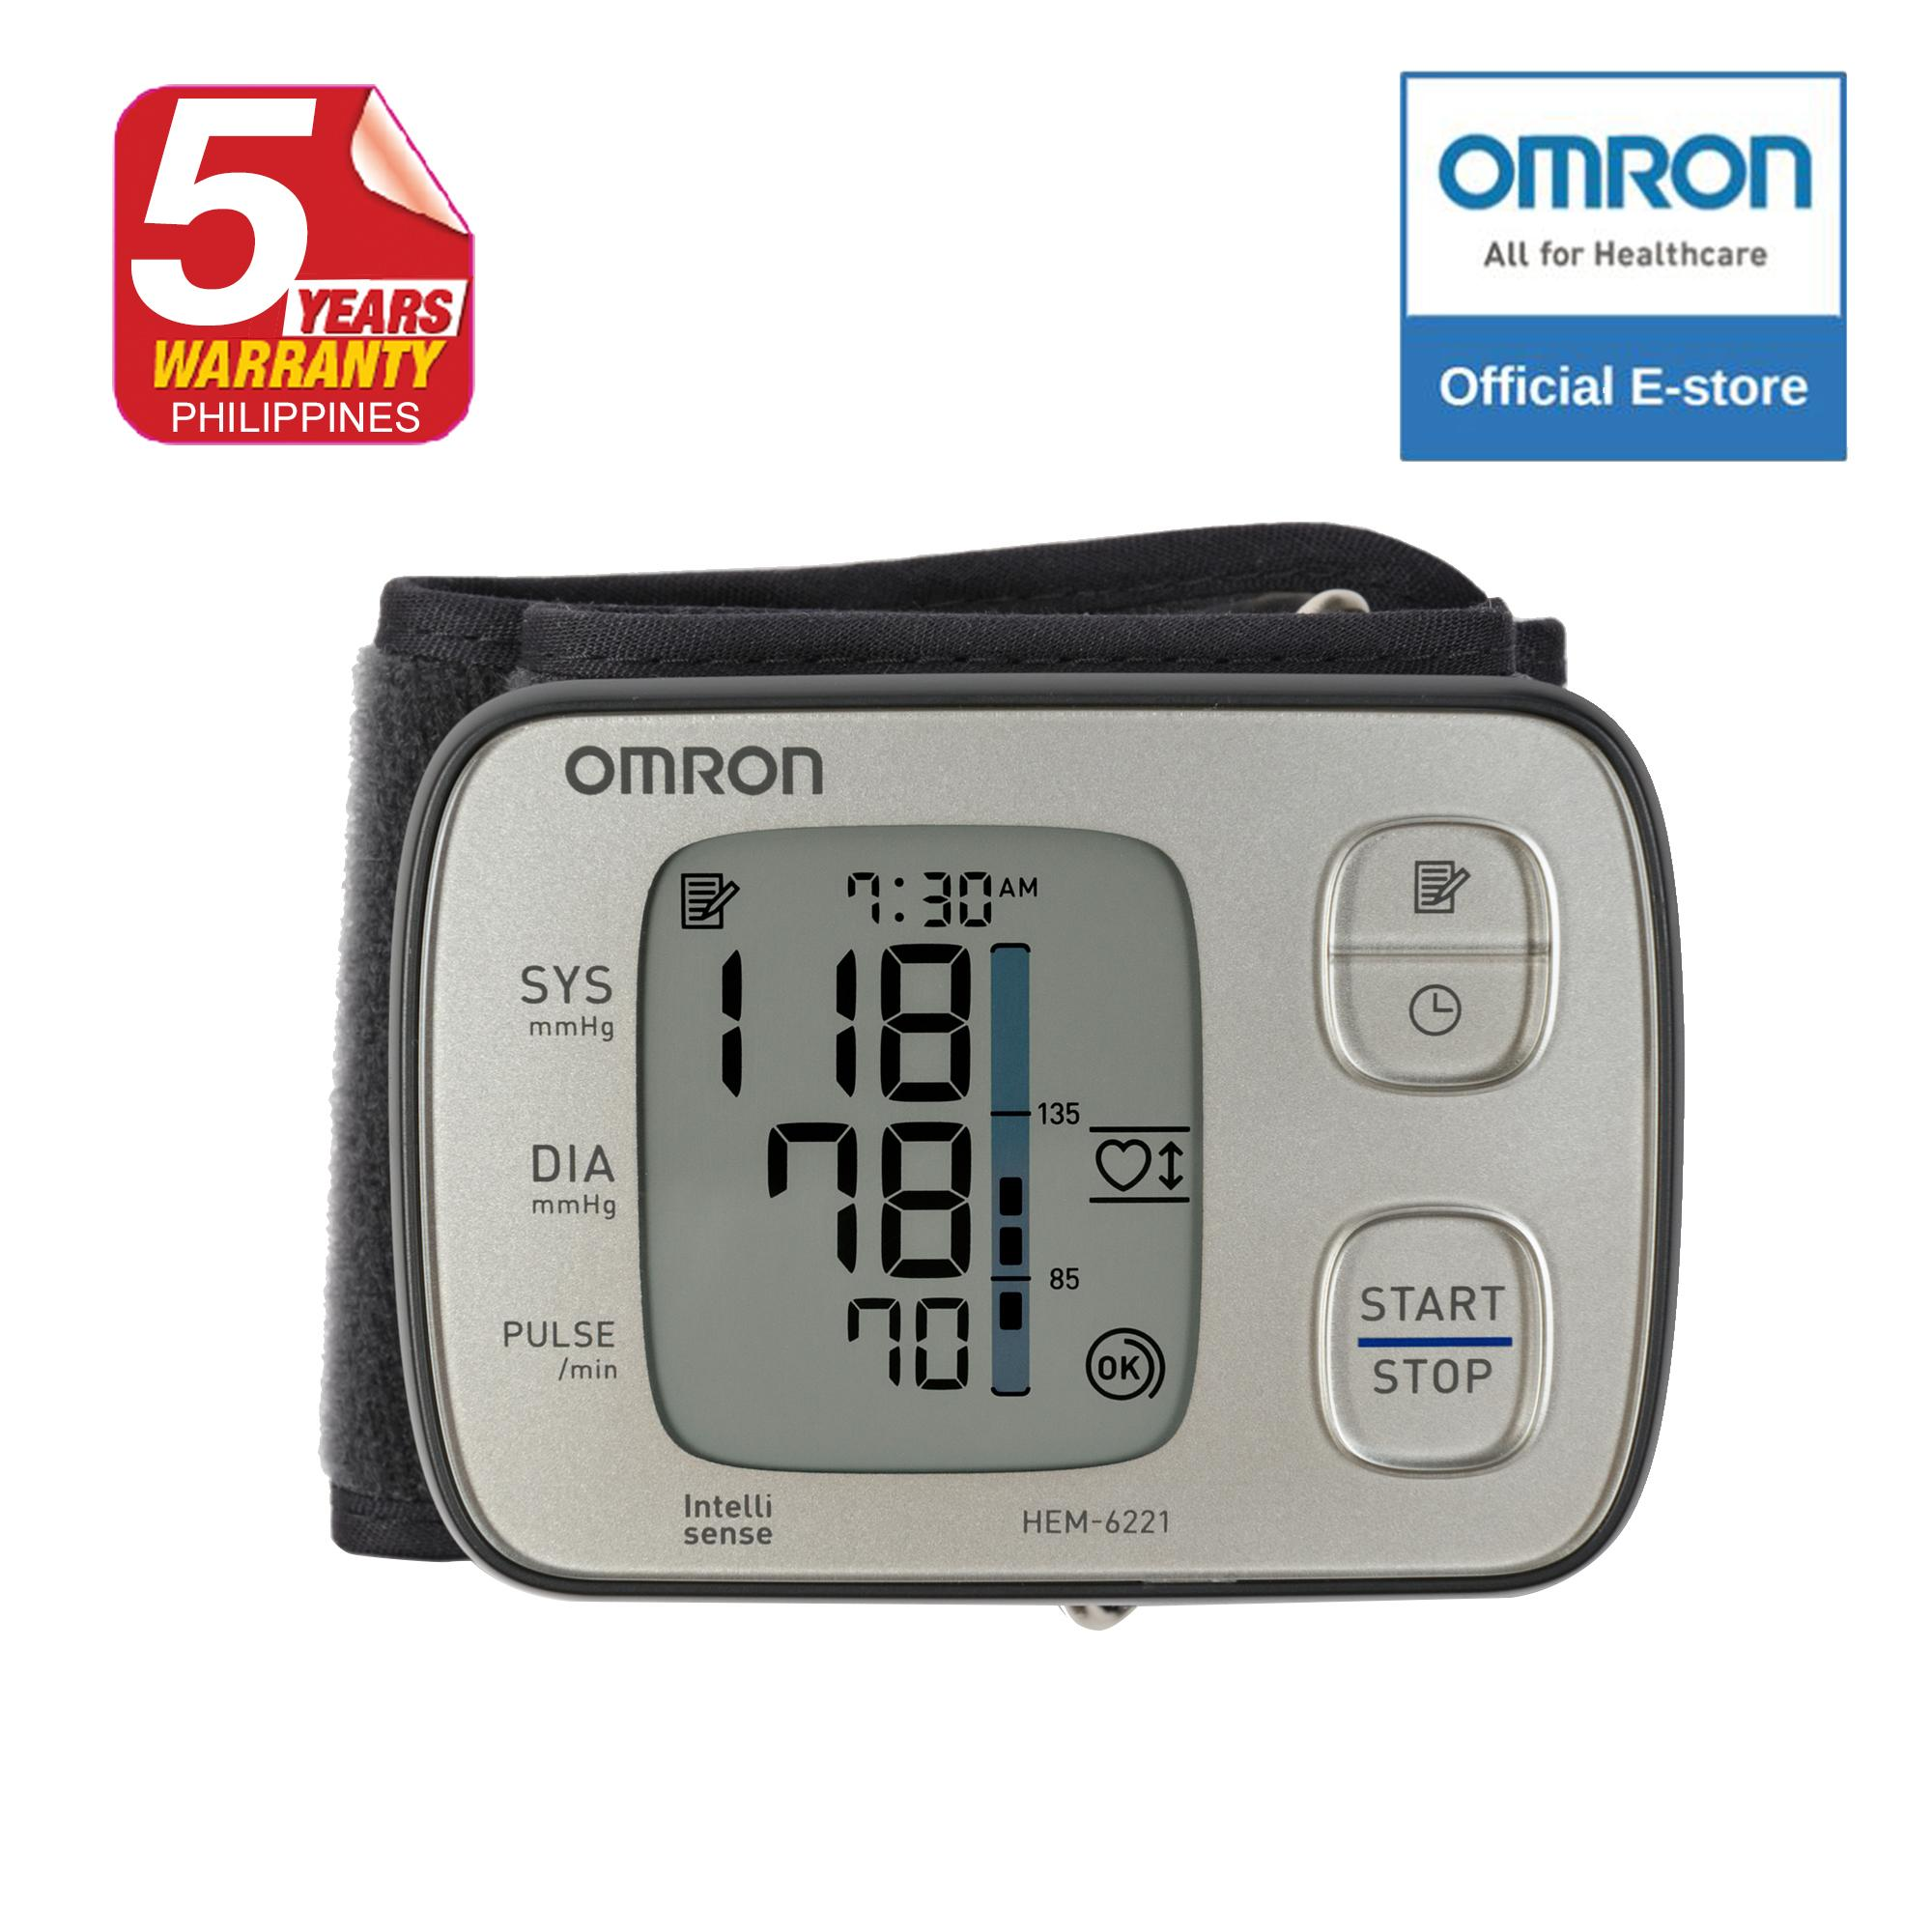 Omron Philippines Price List Health Care Electronics Thermometer Digital Mc 245 Hem 6221 Wrist Blood Pressure Monitor